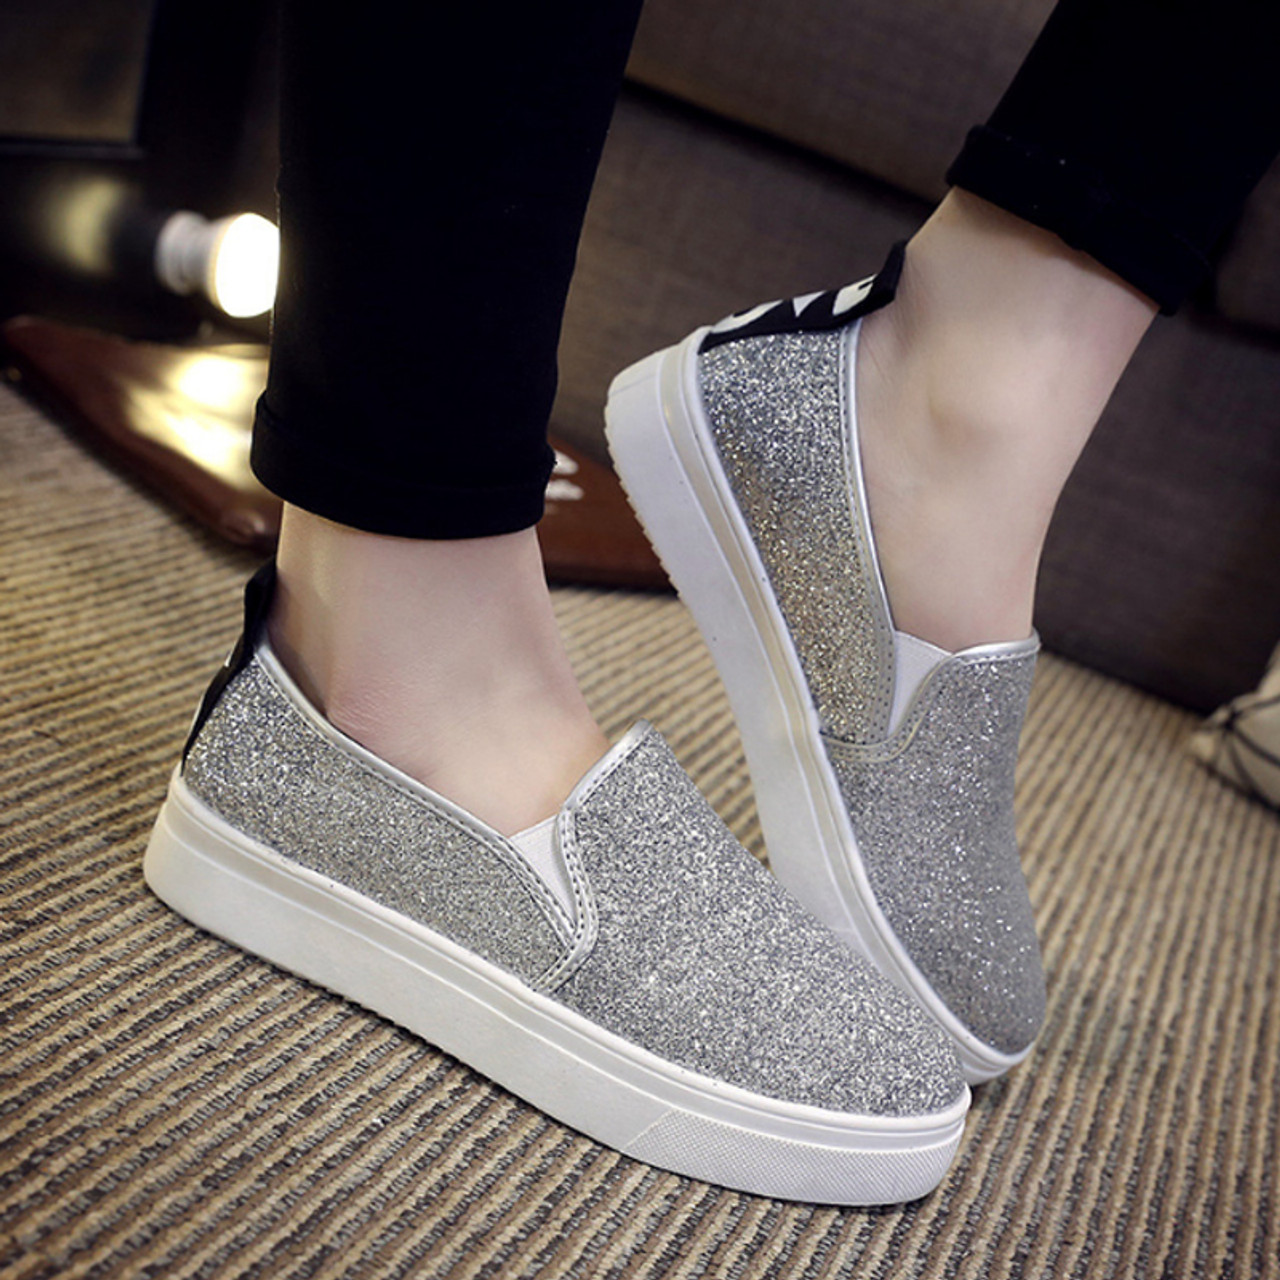 54b70d279e 2018 Bling Women Loafers Spring Sequined Cloth Platform Flat Shoes Ladies  Slip On Woman Slipony Creeper Flats Casual Shoes 051